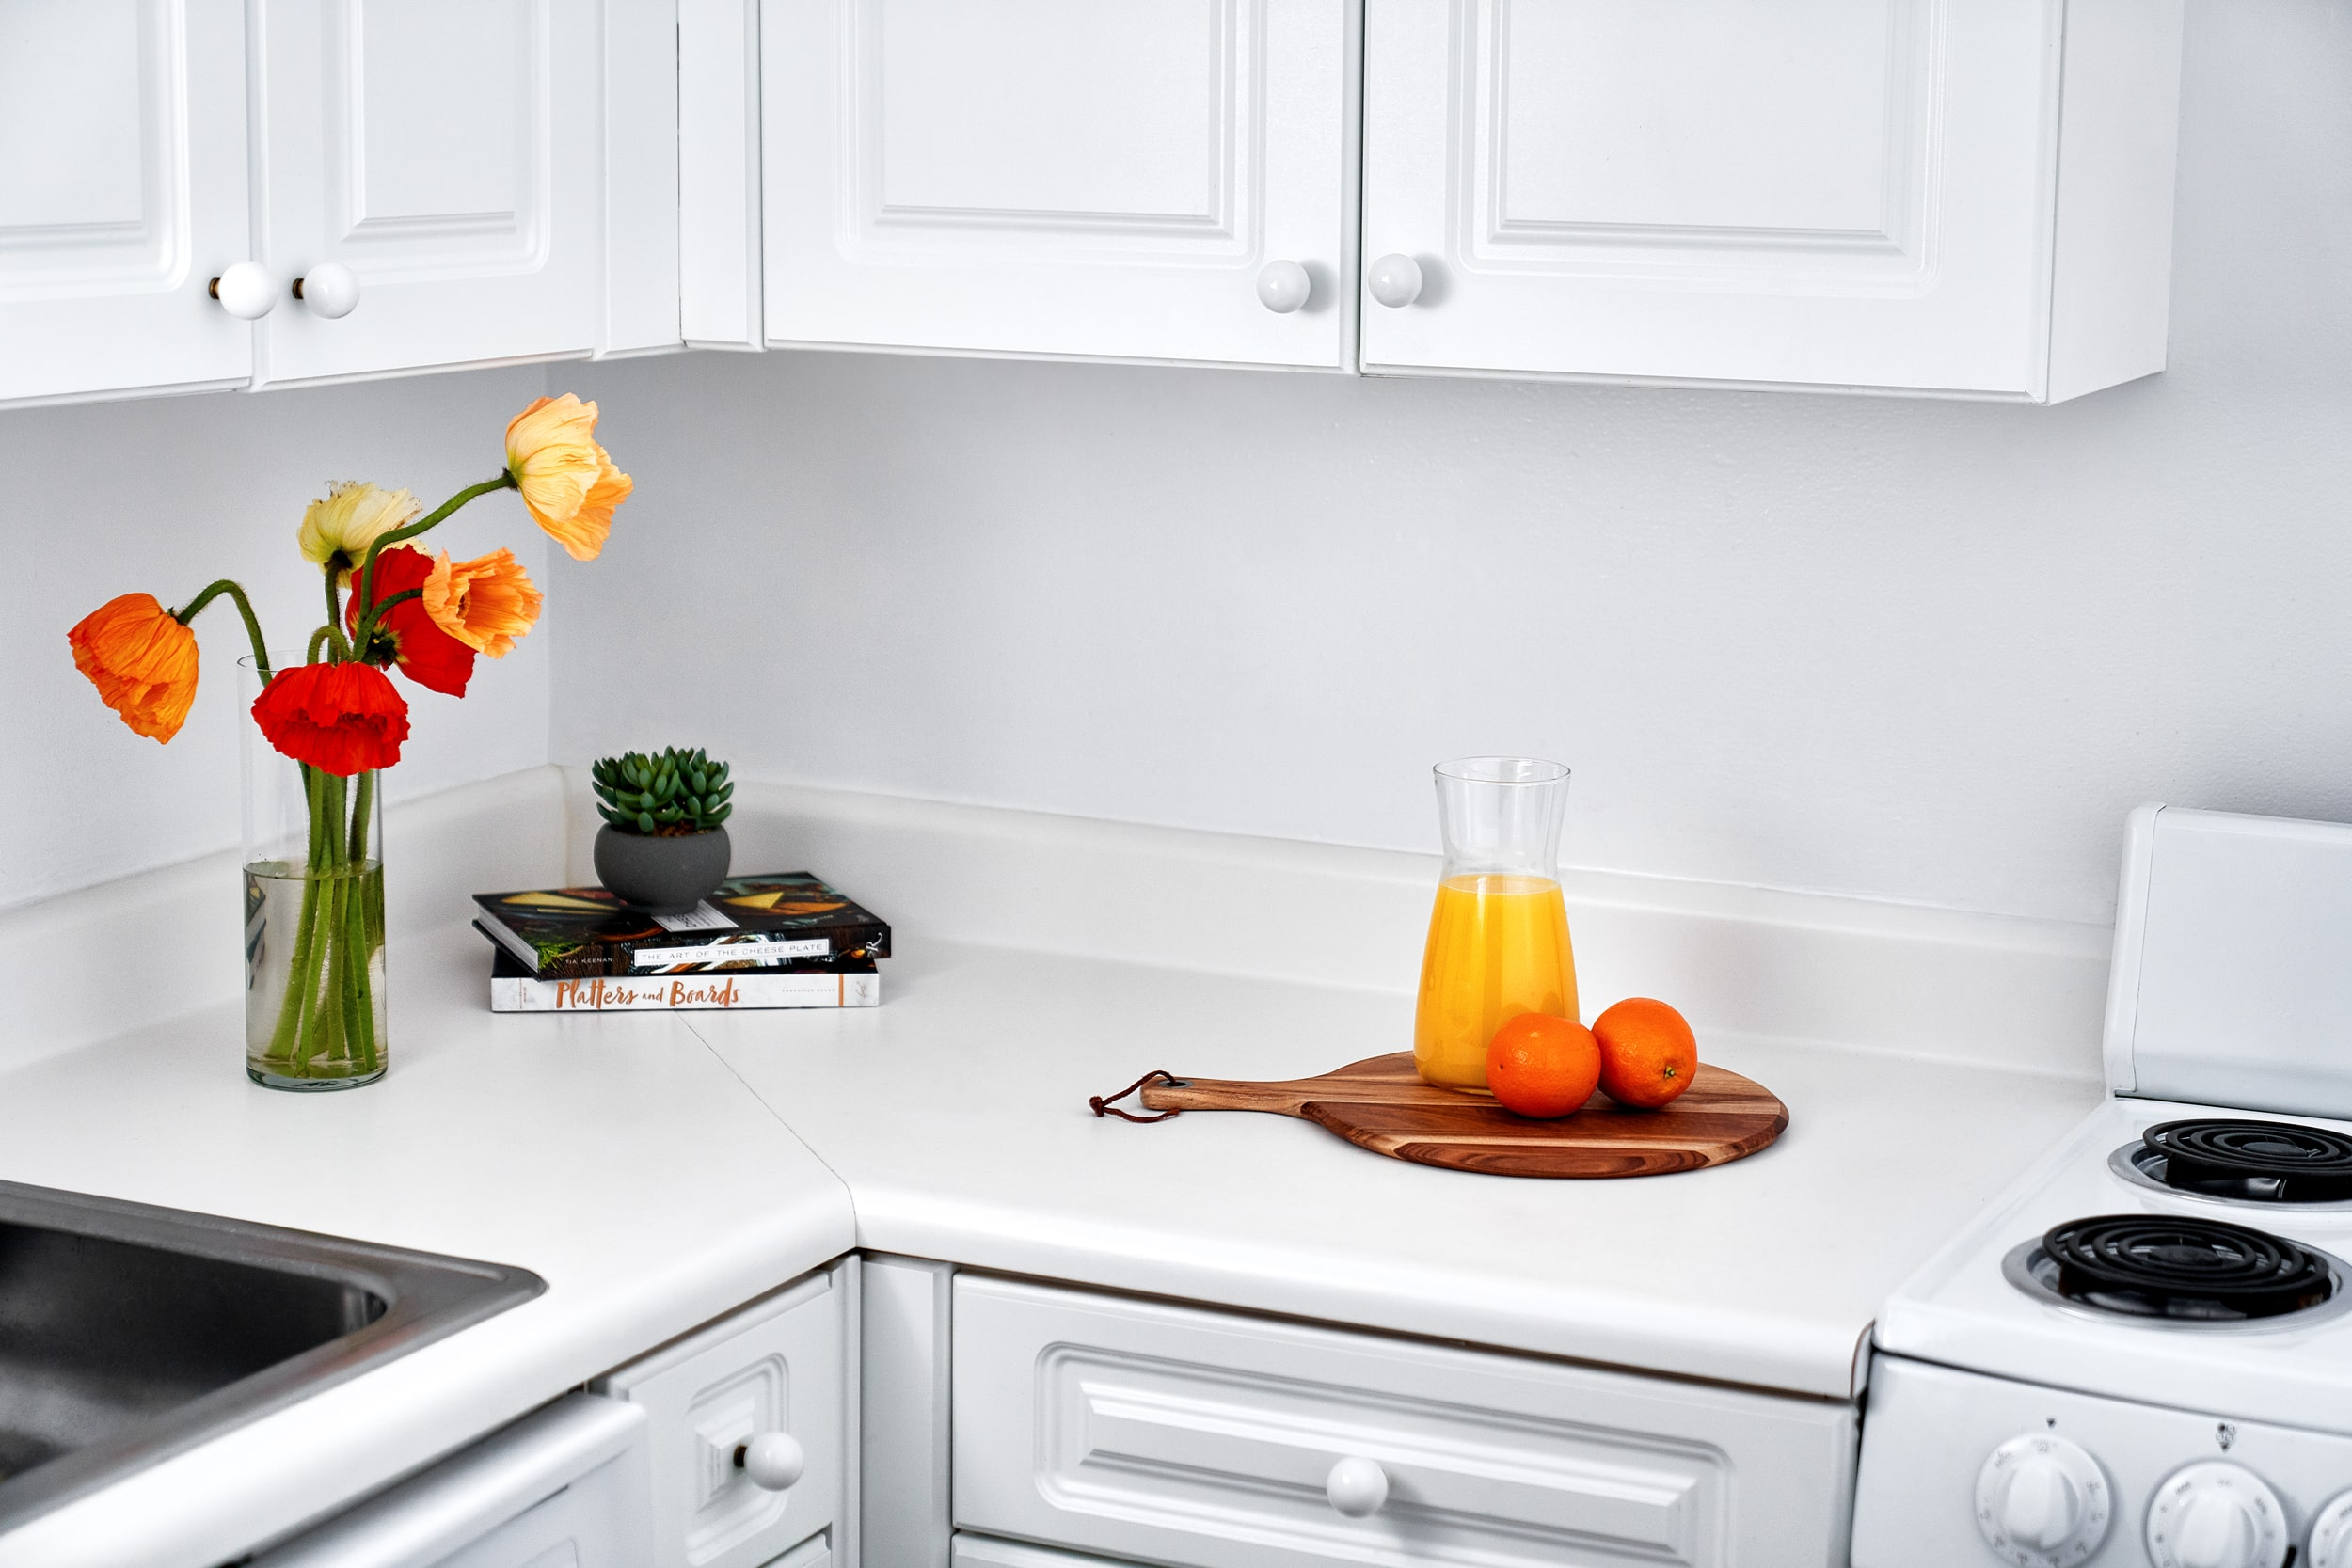 Kitchen with flowers and fruit